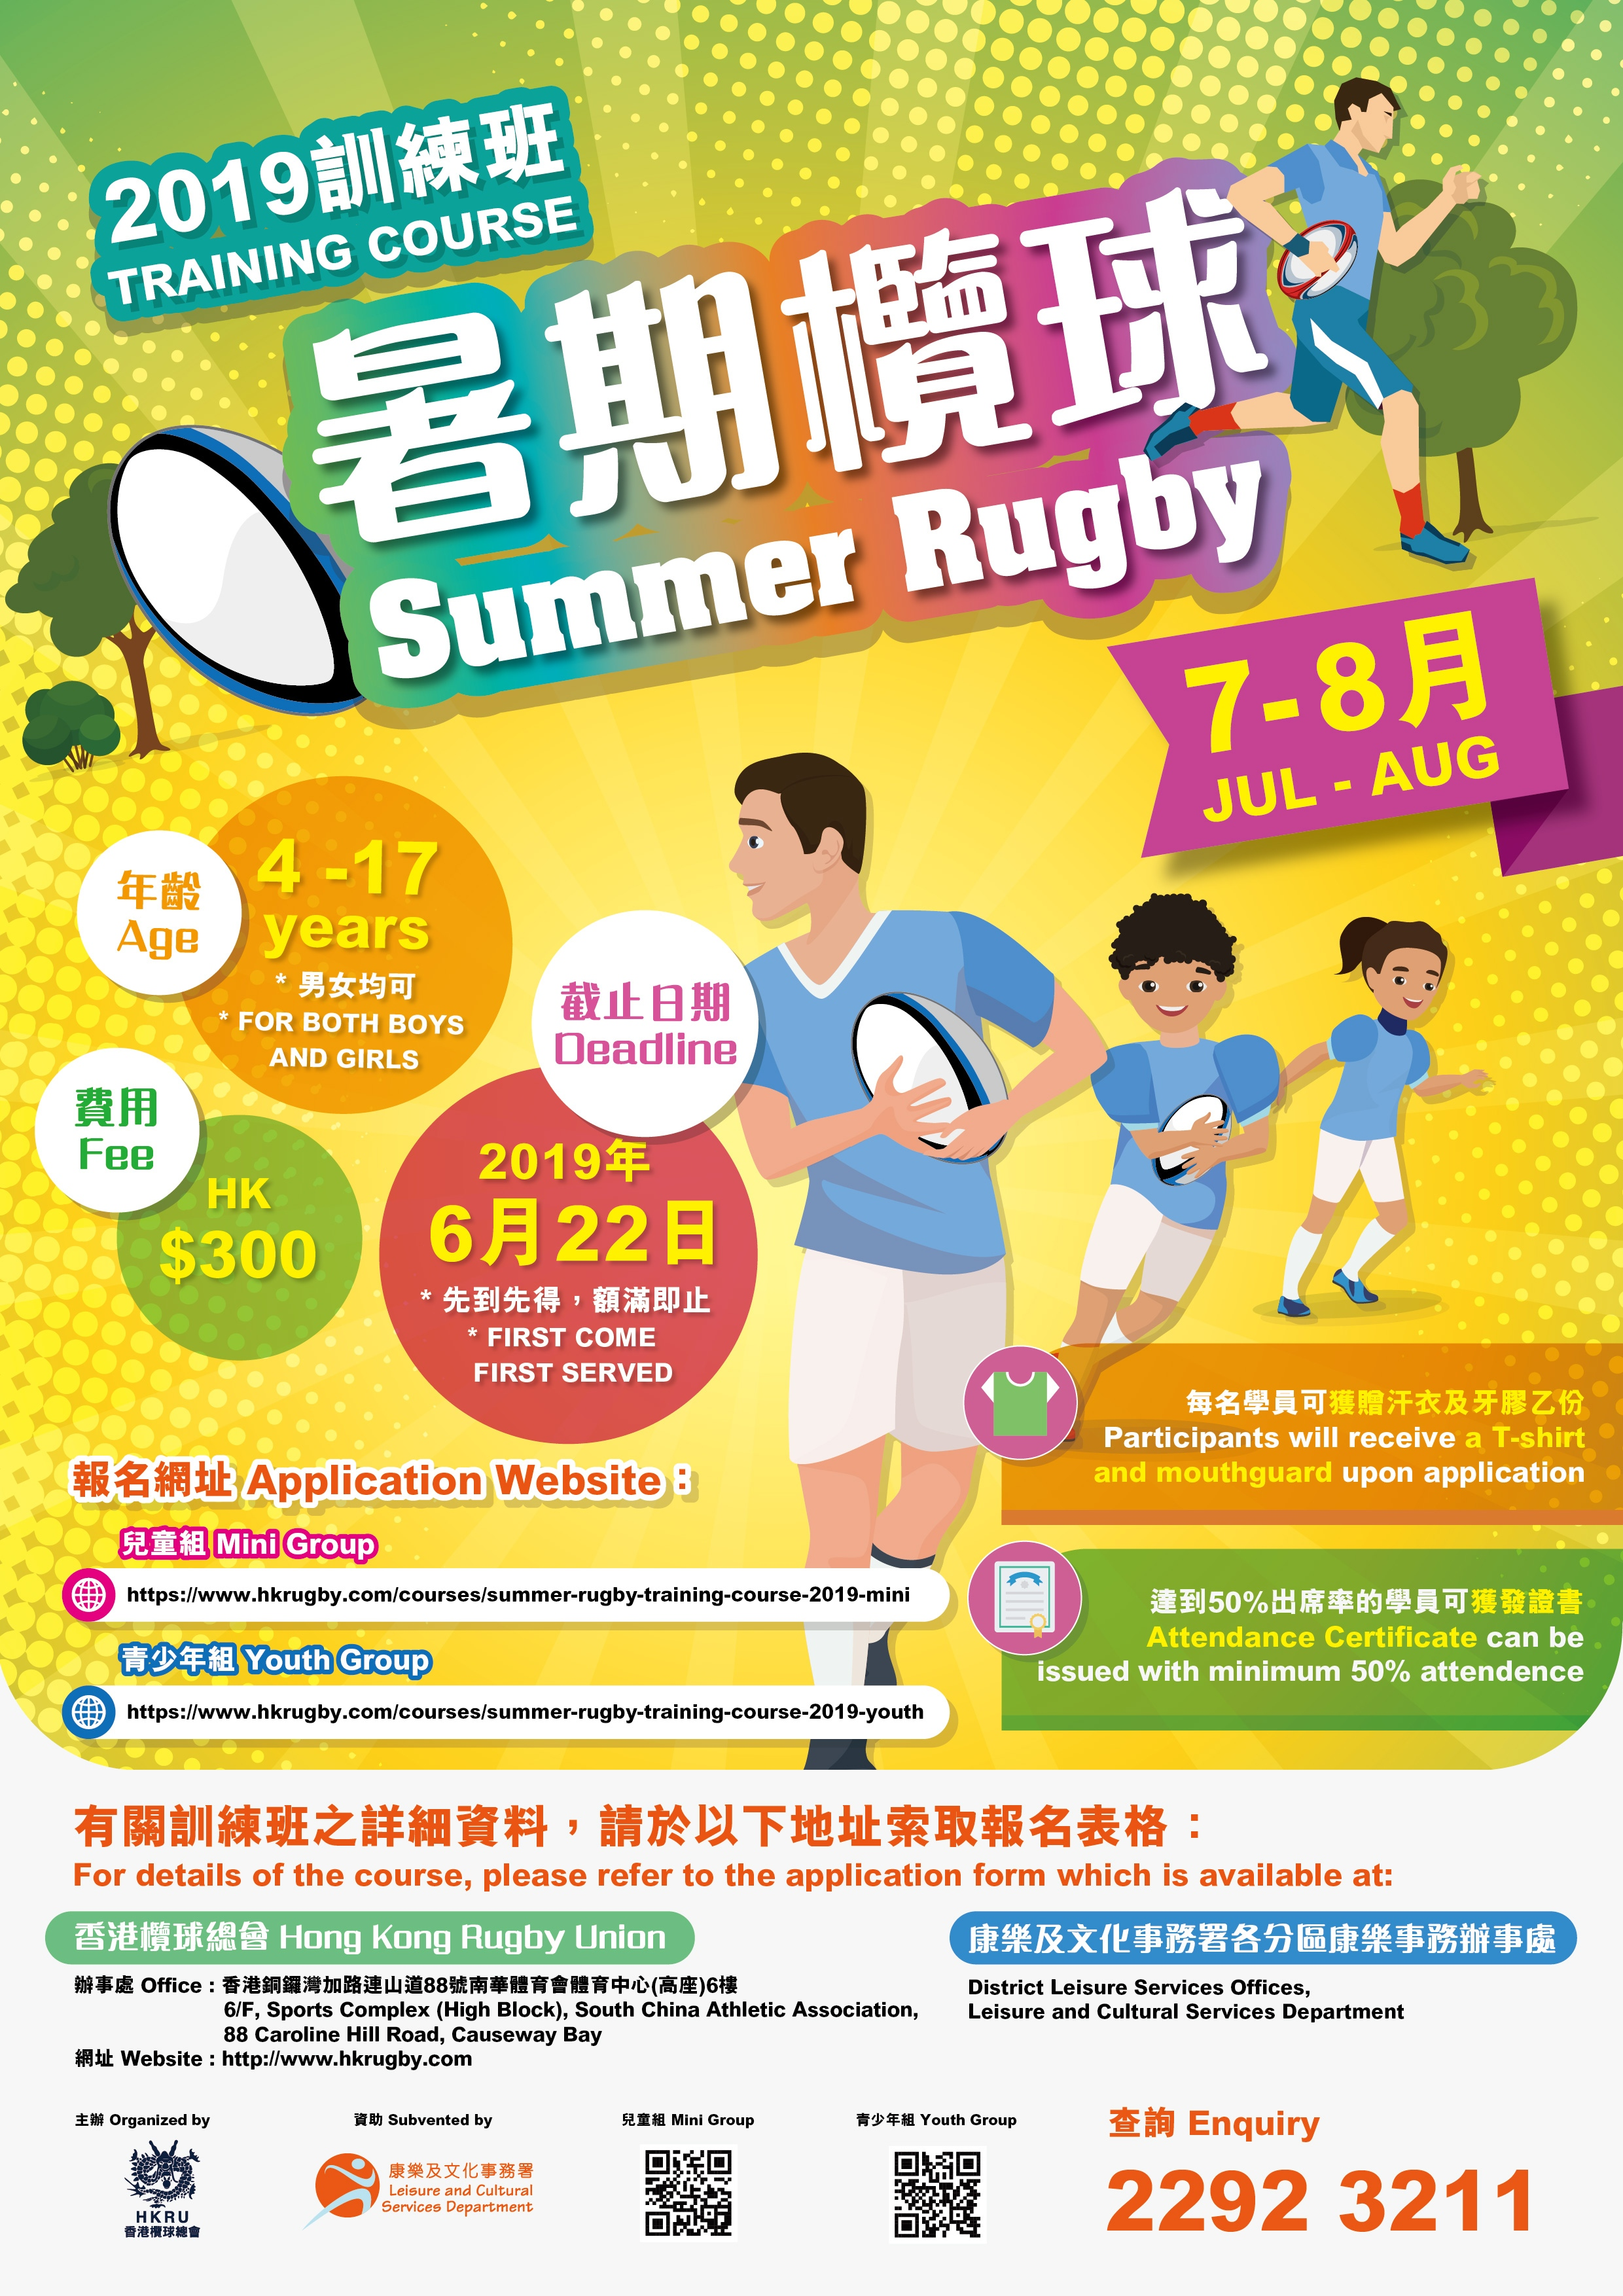 Summer Rugby Training Course 2019 - Youth (Age 12-17) thumbnail